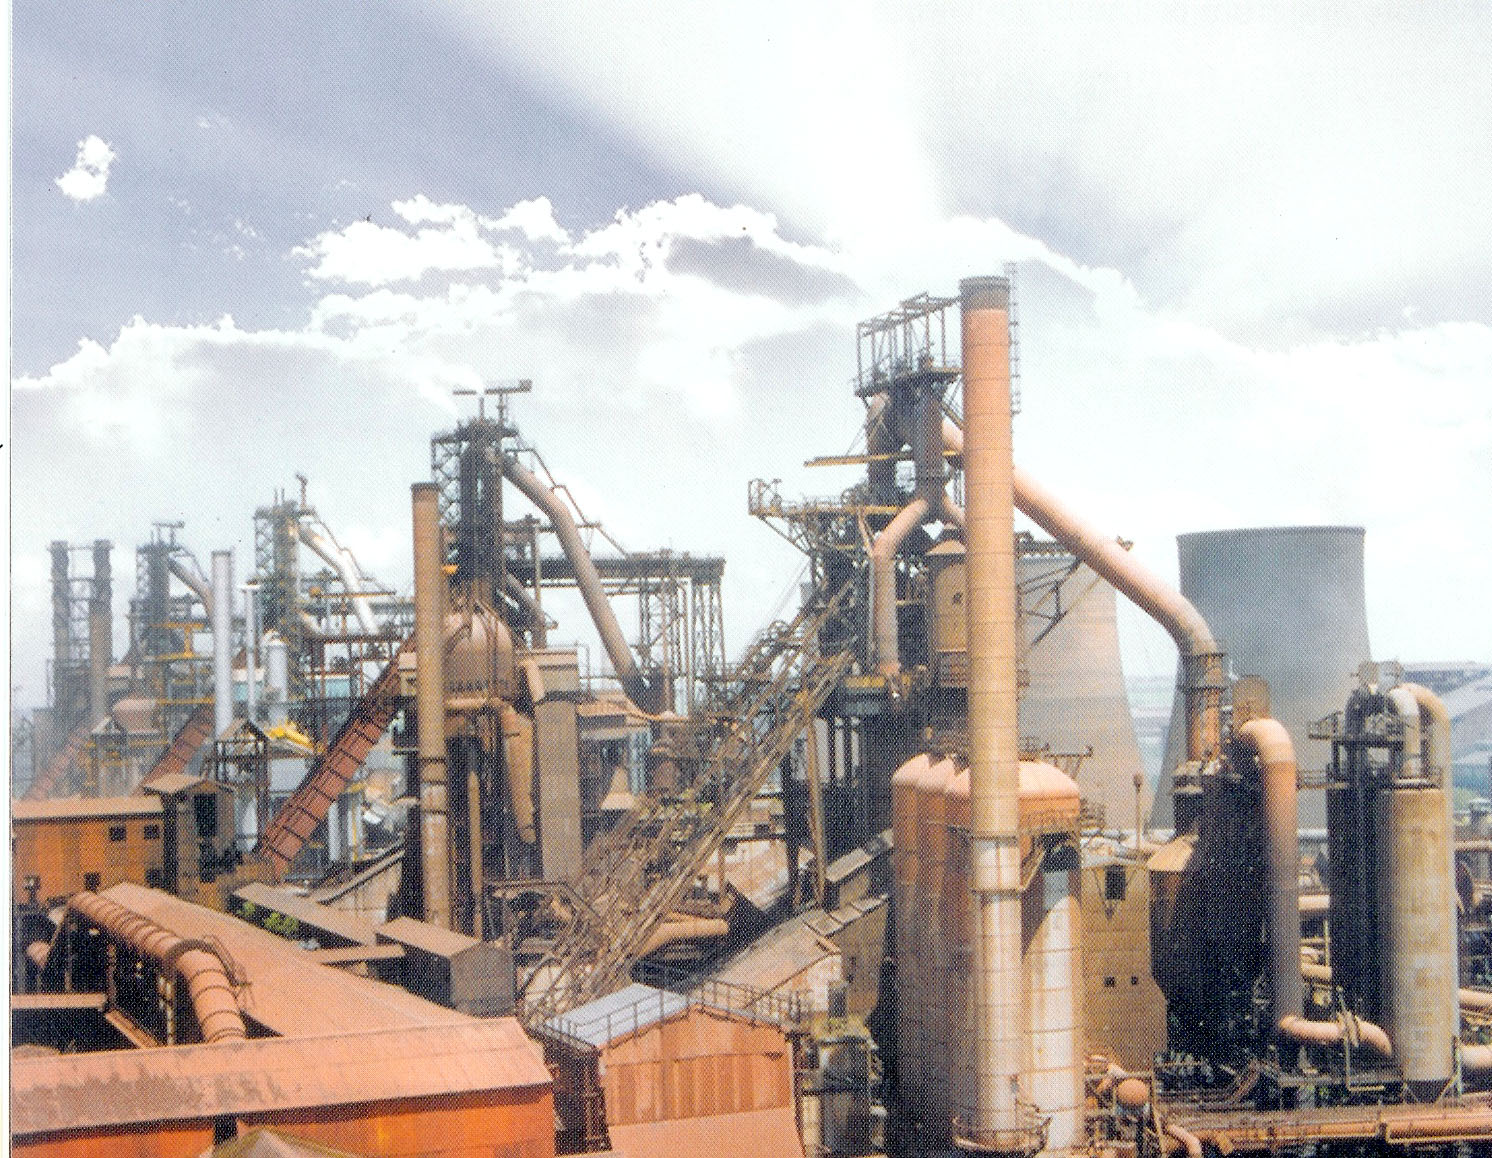 case study of bhilai steel plant Request pdf on researchgate | hr strategies for turnaround management: a case study of rourkela steel plant | human resources are.